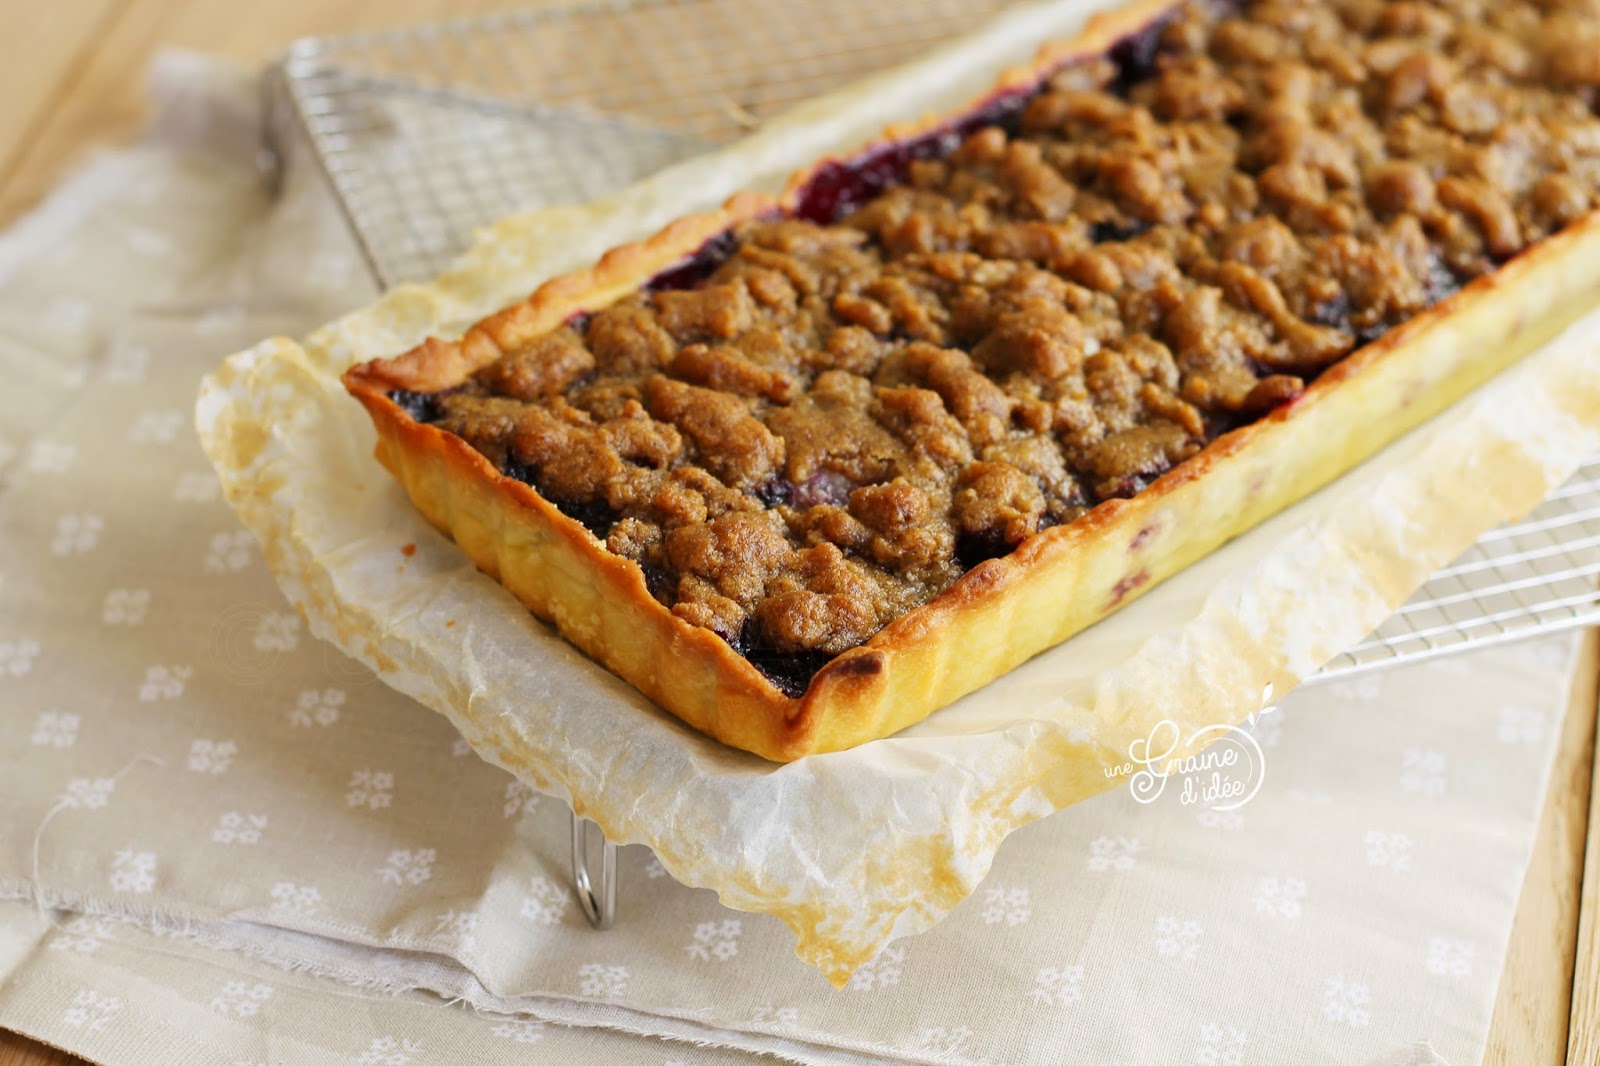 Tarte crumble fruits rouges - Une Graine d'Idée